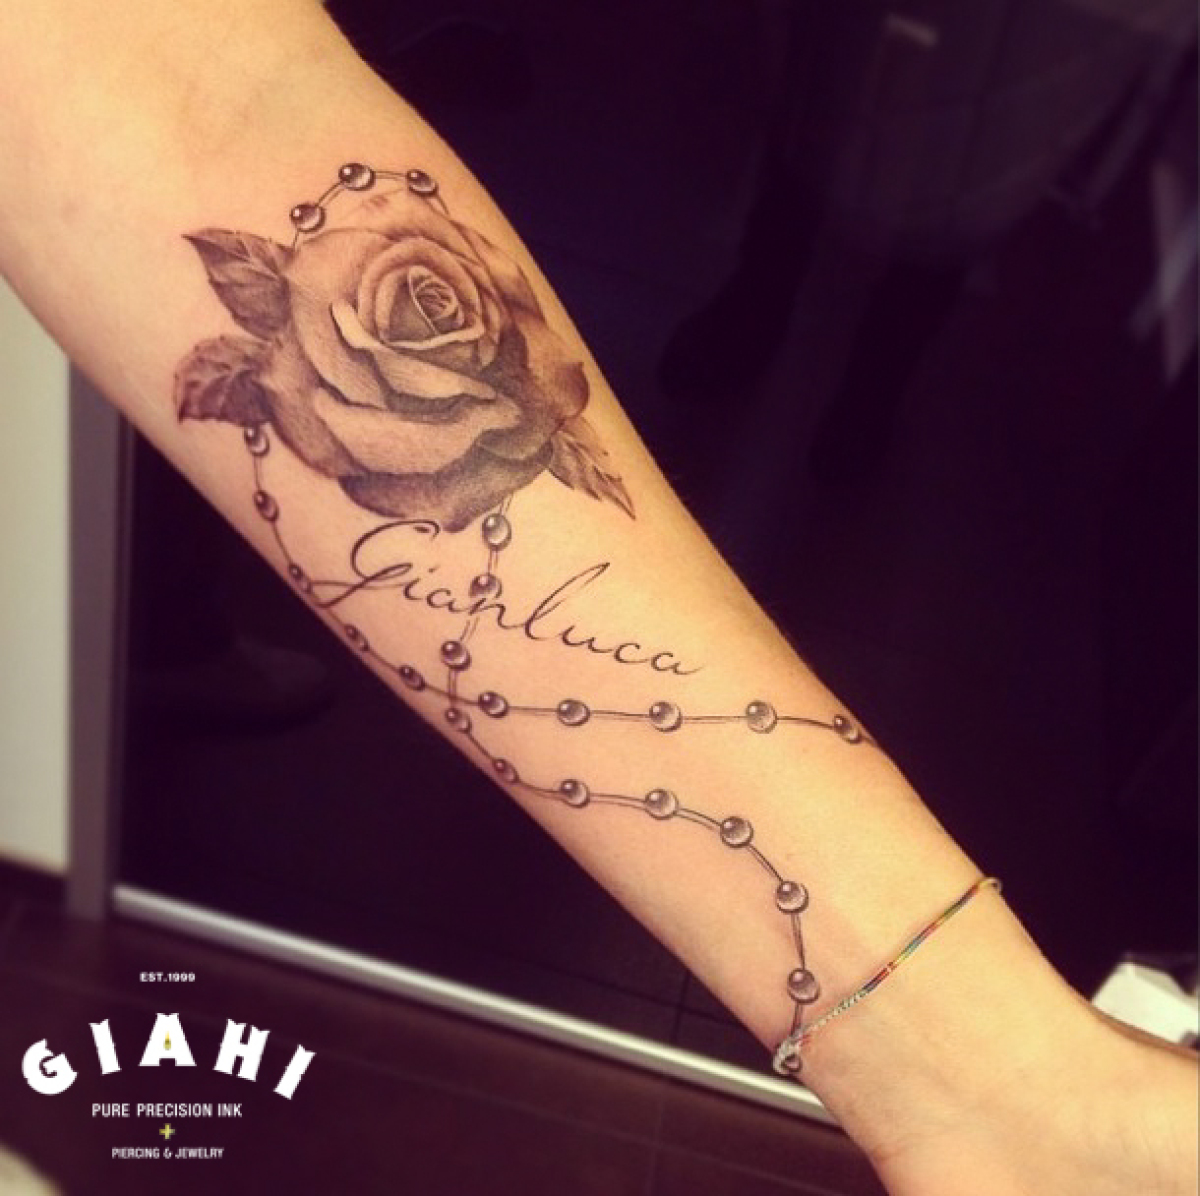 041276e6fac57 Beads Rose Graphic tattoo by Roony | Best Tattoo Ideas Gallery